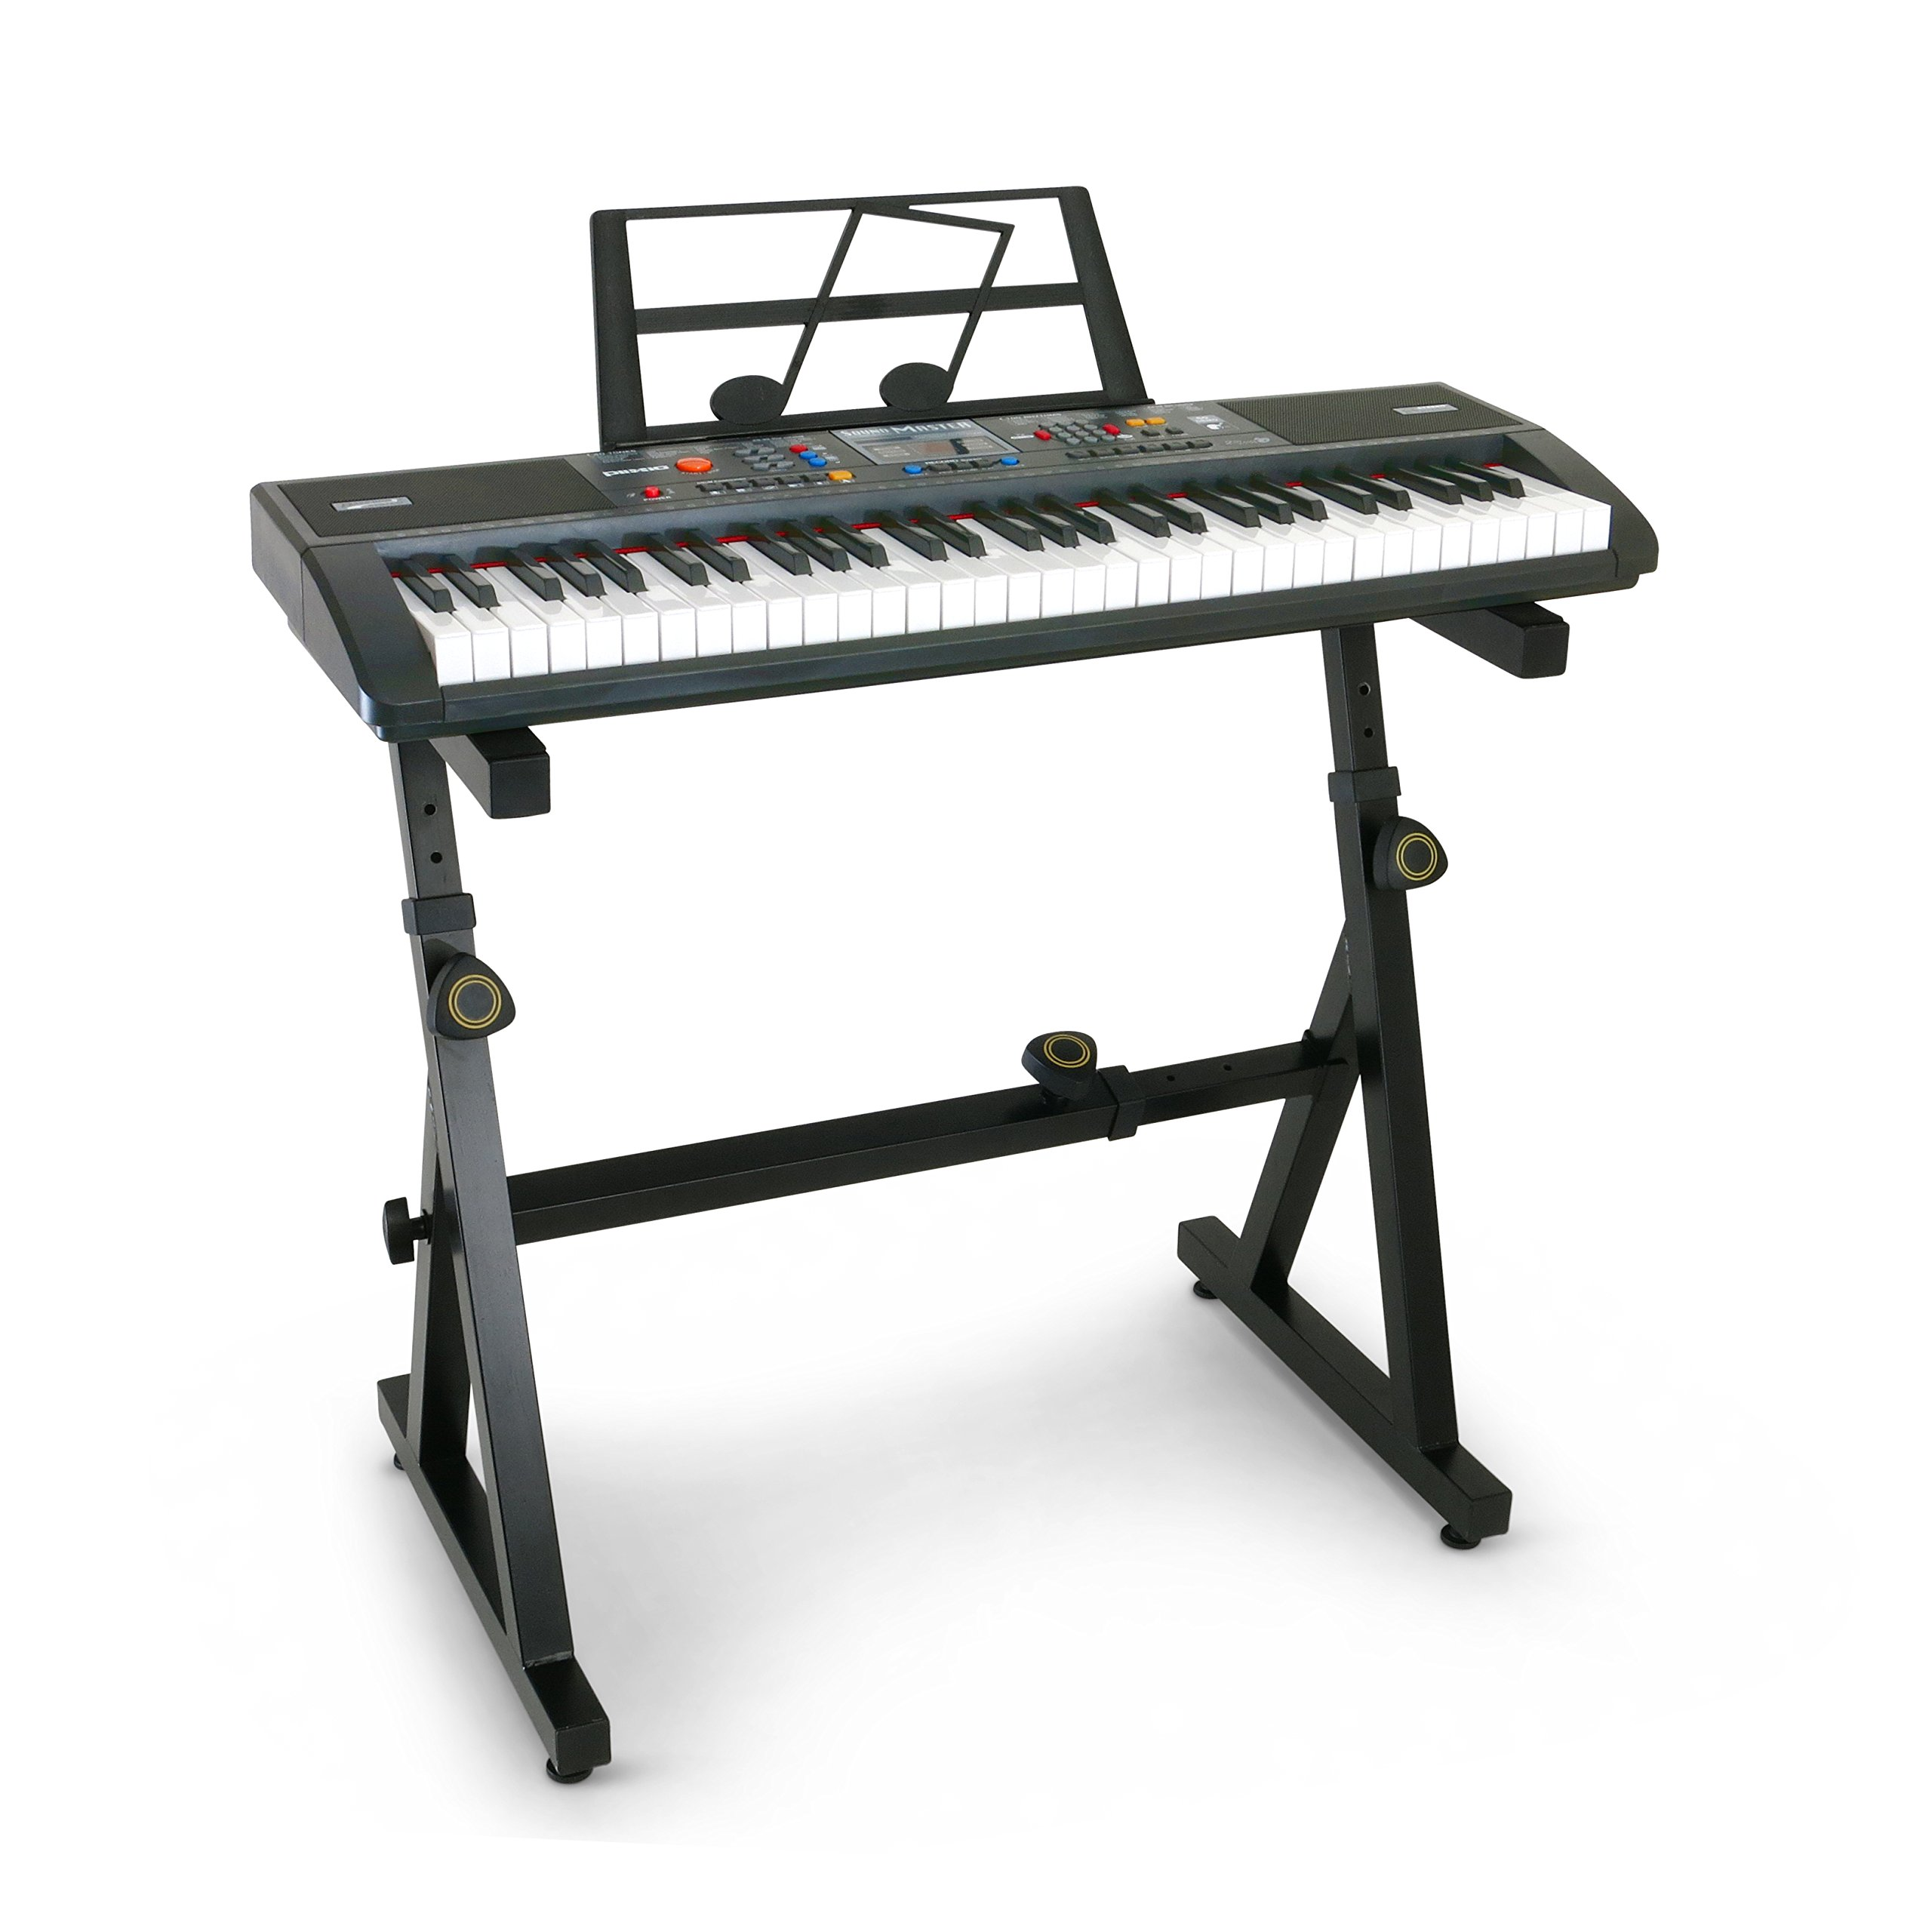 Plixio 61 Key Electronic Music Keyboard Piano and Adjustable Z Style Stand by Plixio (Image #1)